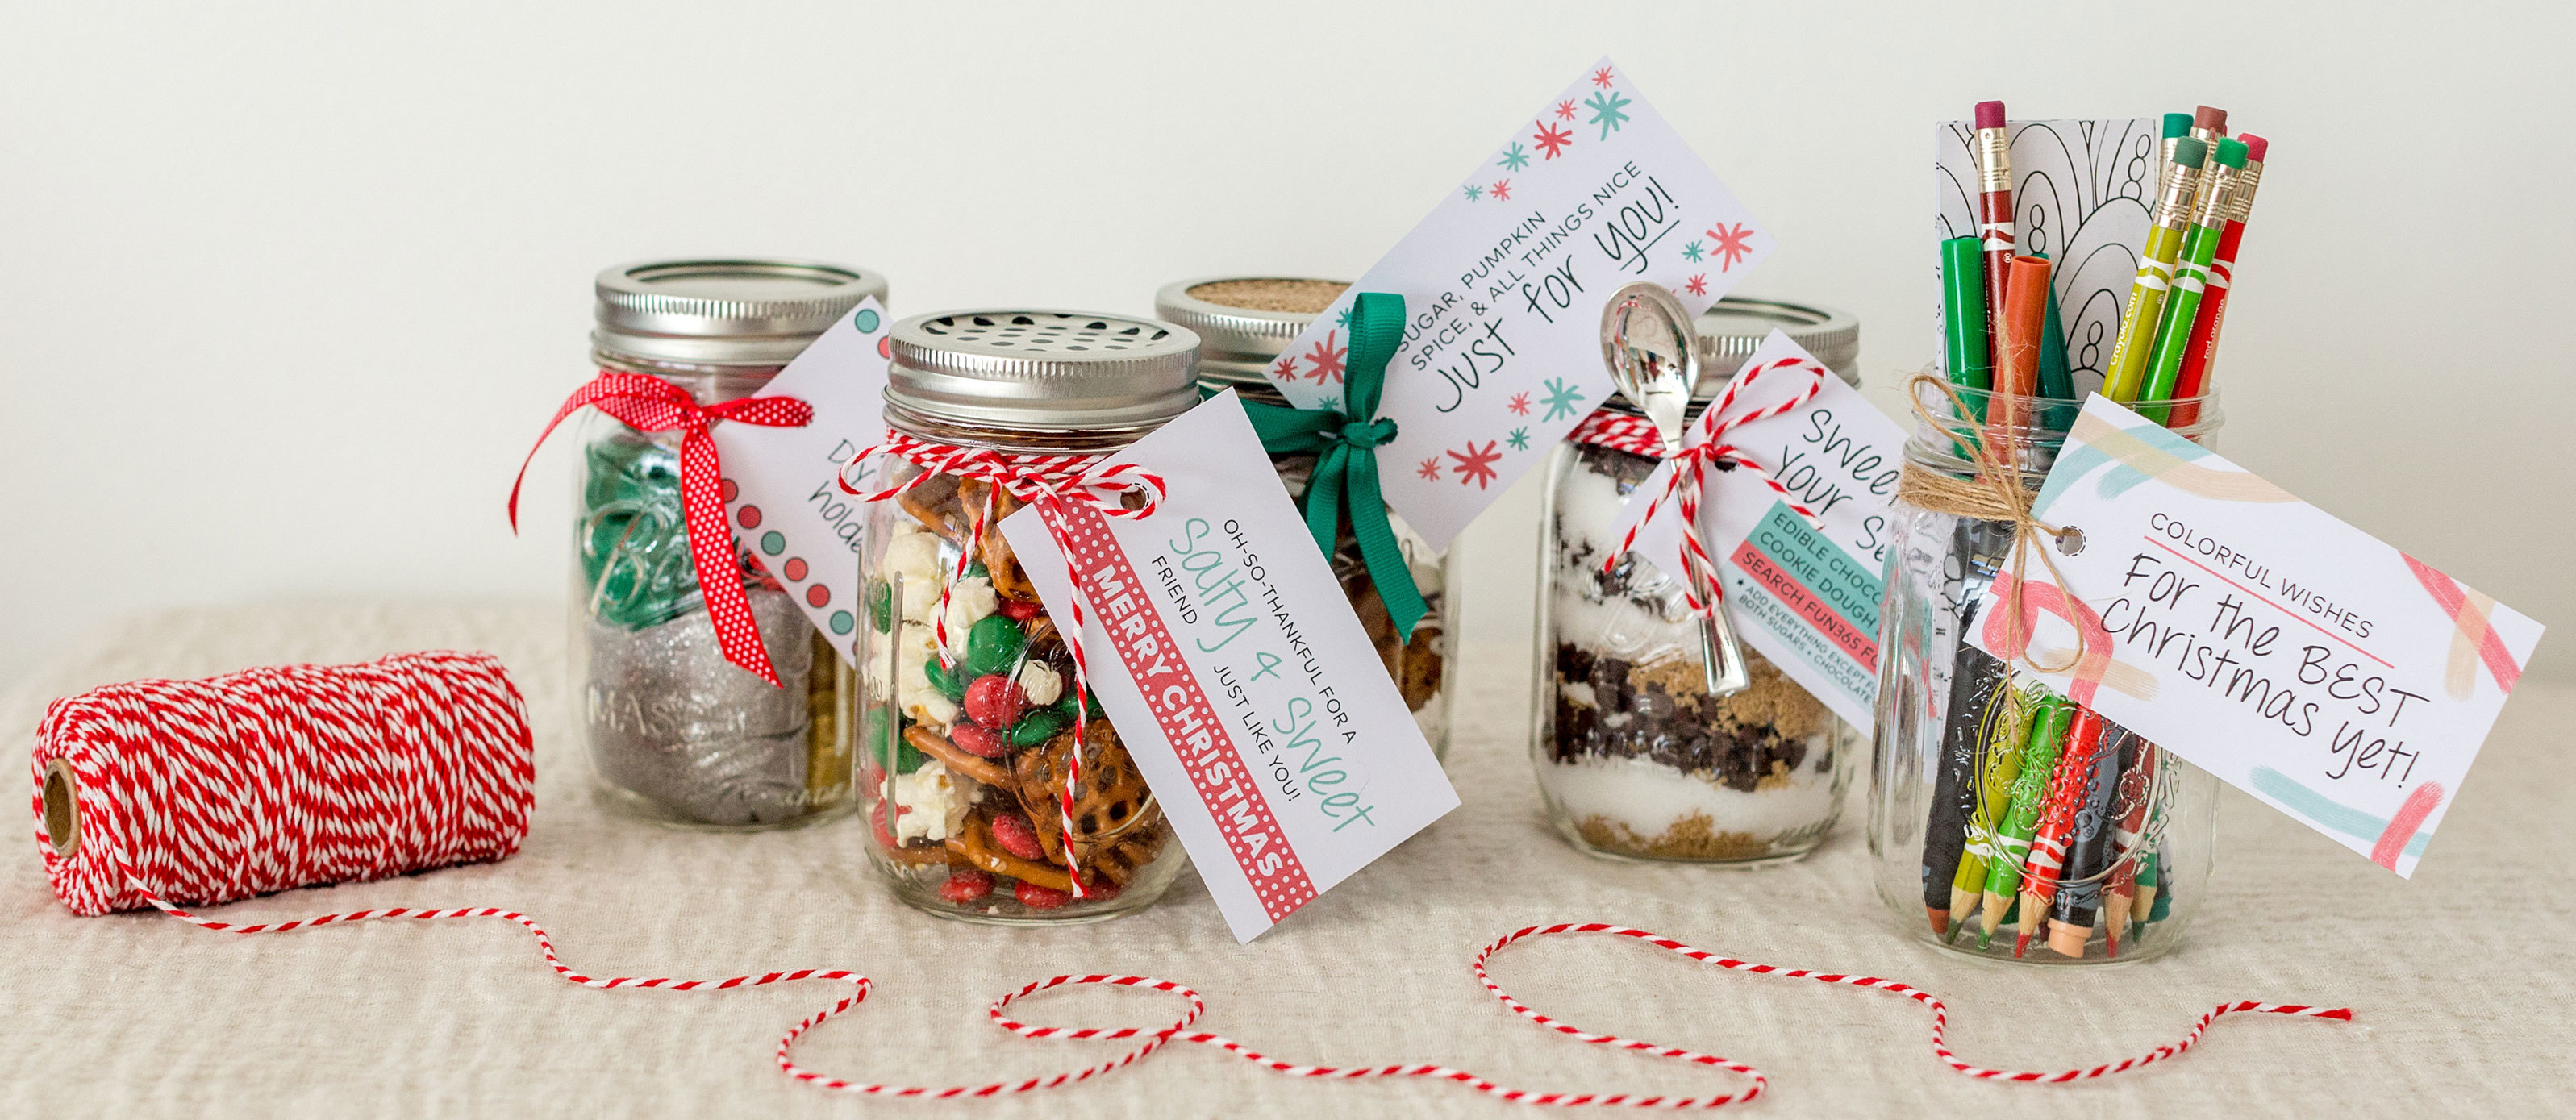 5 Mason Jar Food And Craft Gift Ideas For Christmas Fun365